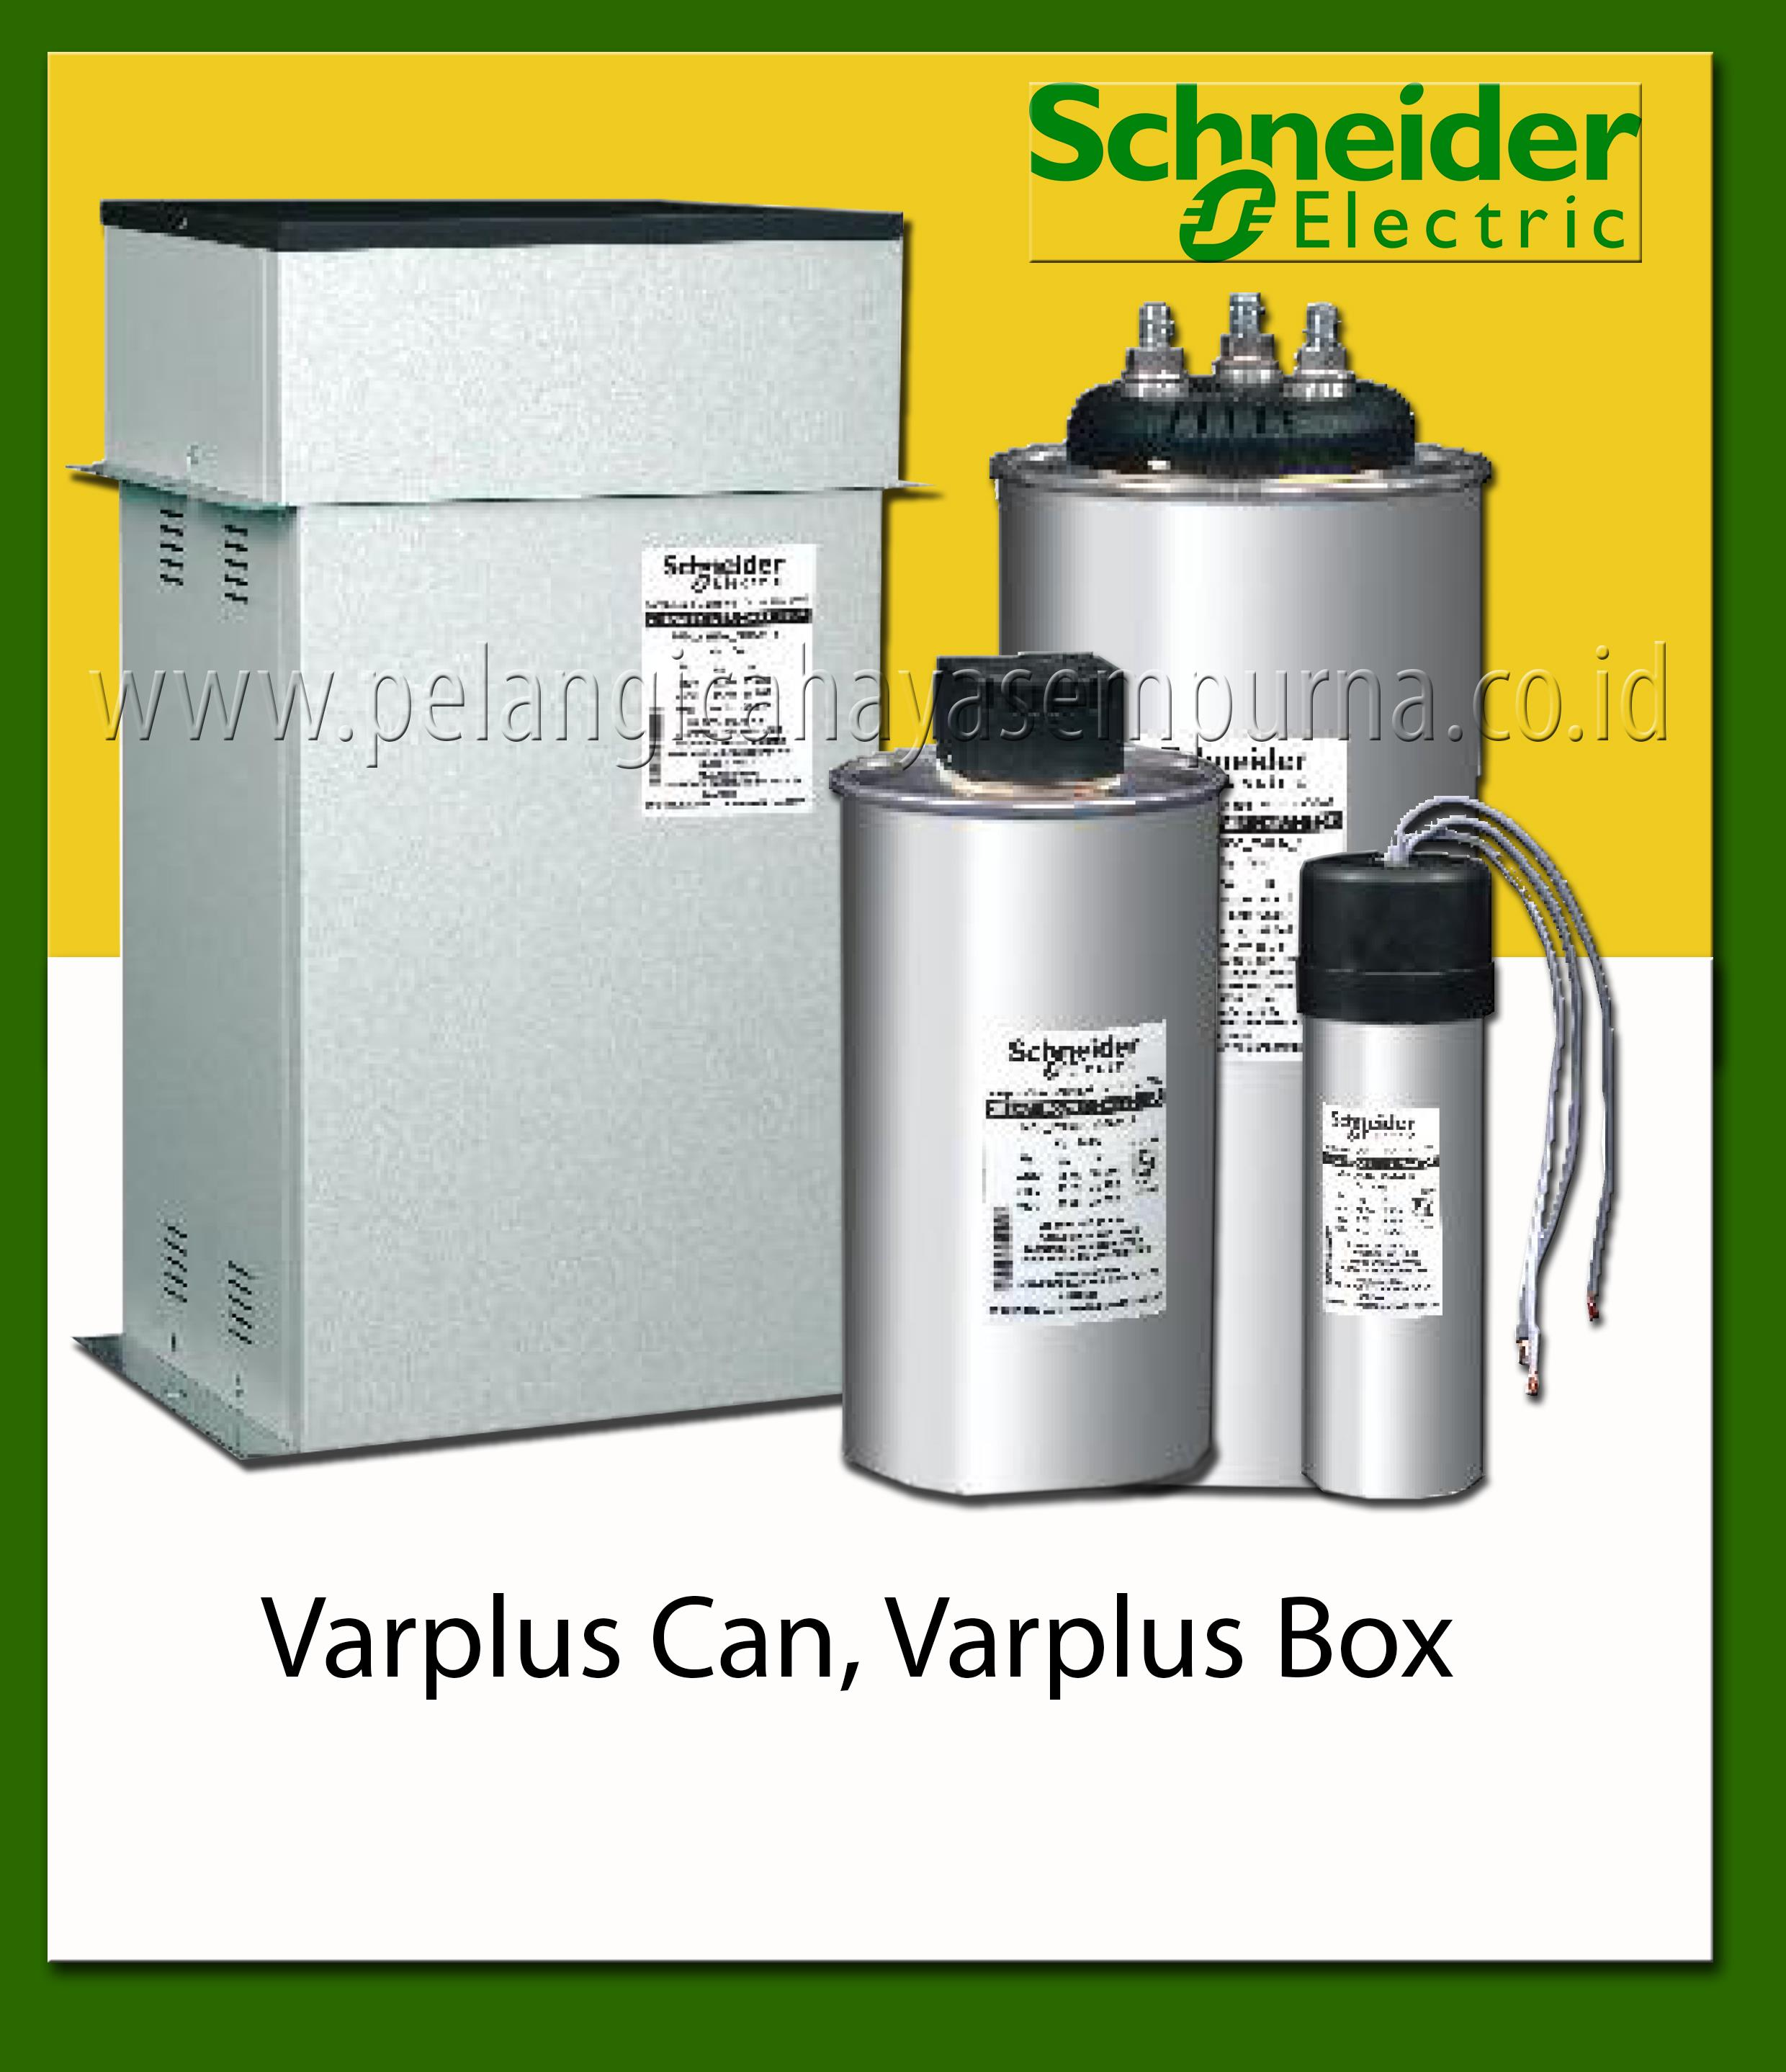 Sell Power Factor Control Capacitor Bank Varplus Can